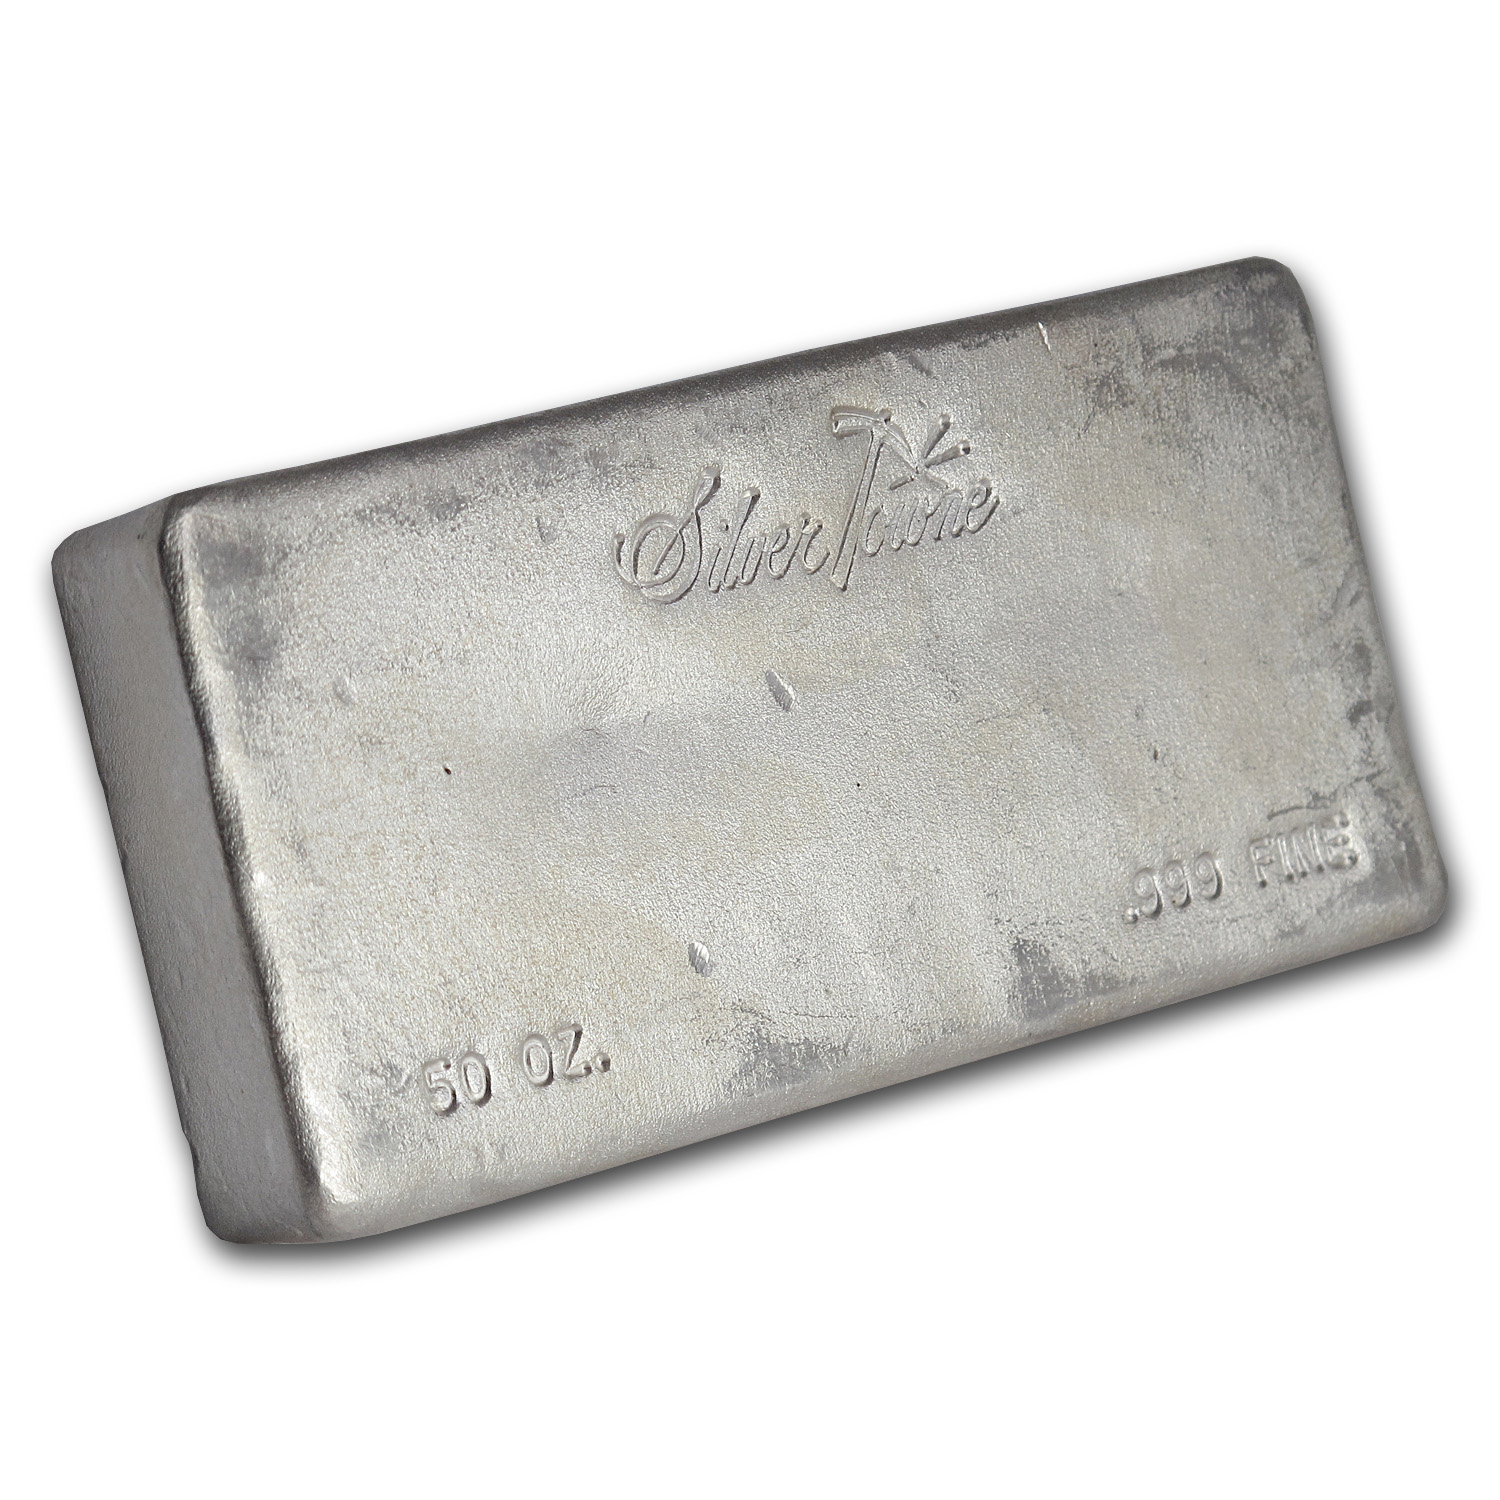 50 oz Silver Bar - Silvertowne (Vintage/Poured)